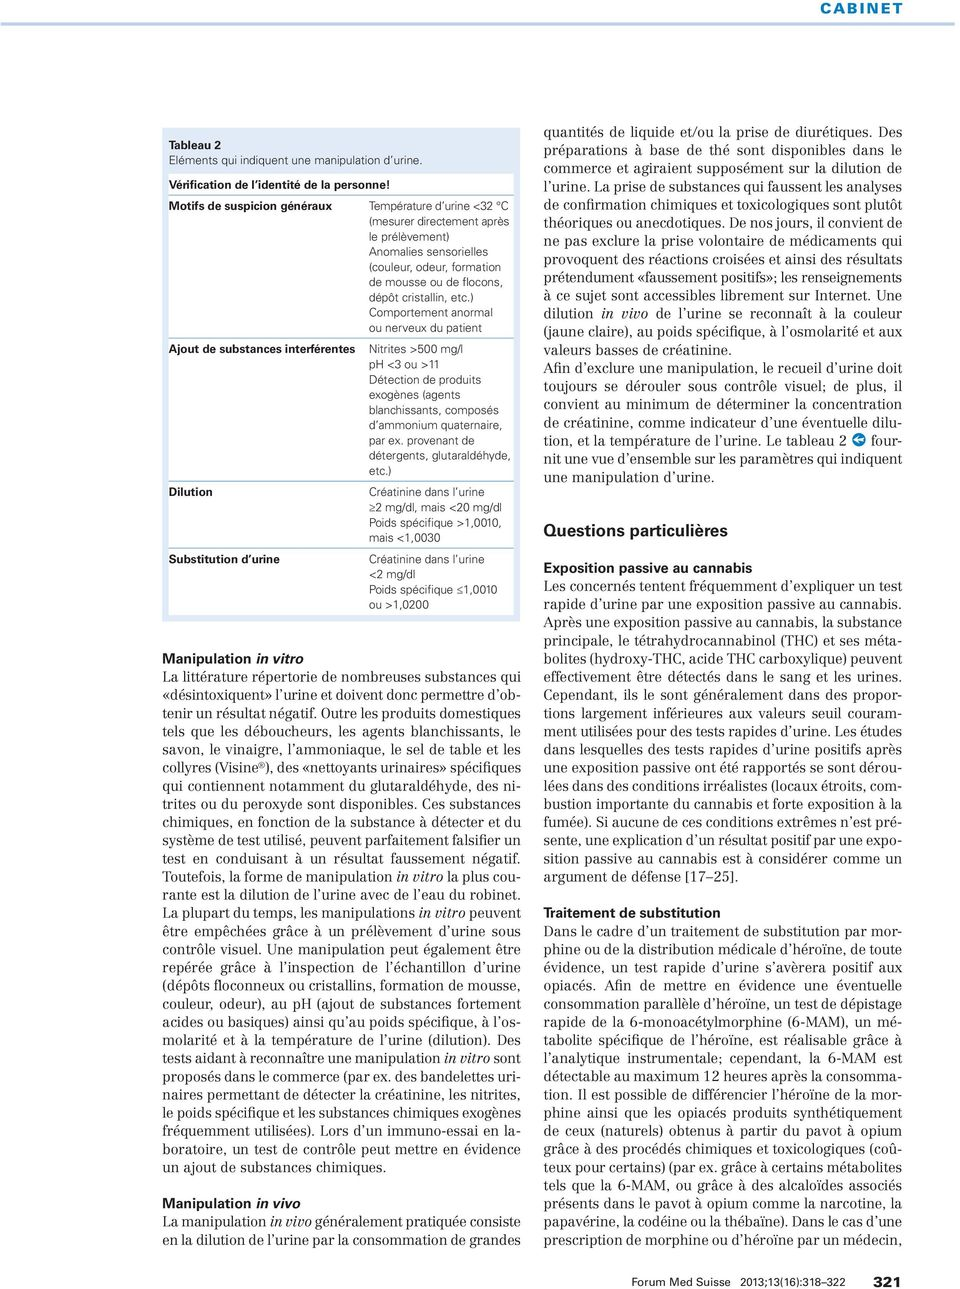 ) Comportement anormal ou nerveux du patient Ajout de substances interférentes Dilution Substitution d urine Nitrites >500 mg/l ph <3 ou >11 Détection de produits exogènes (agents blanchissants,